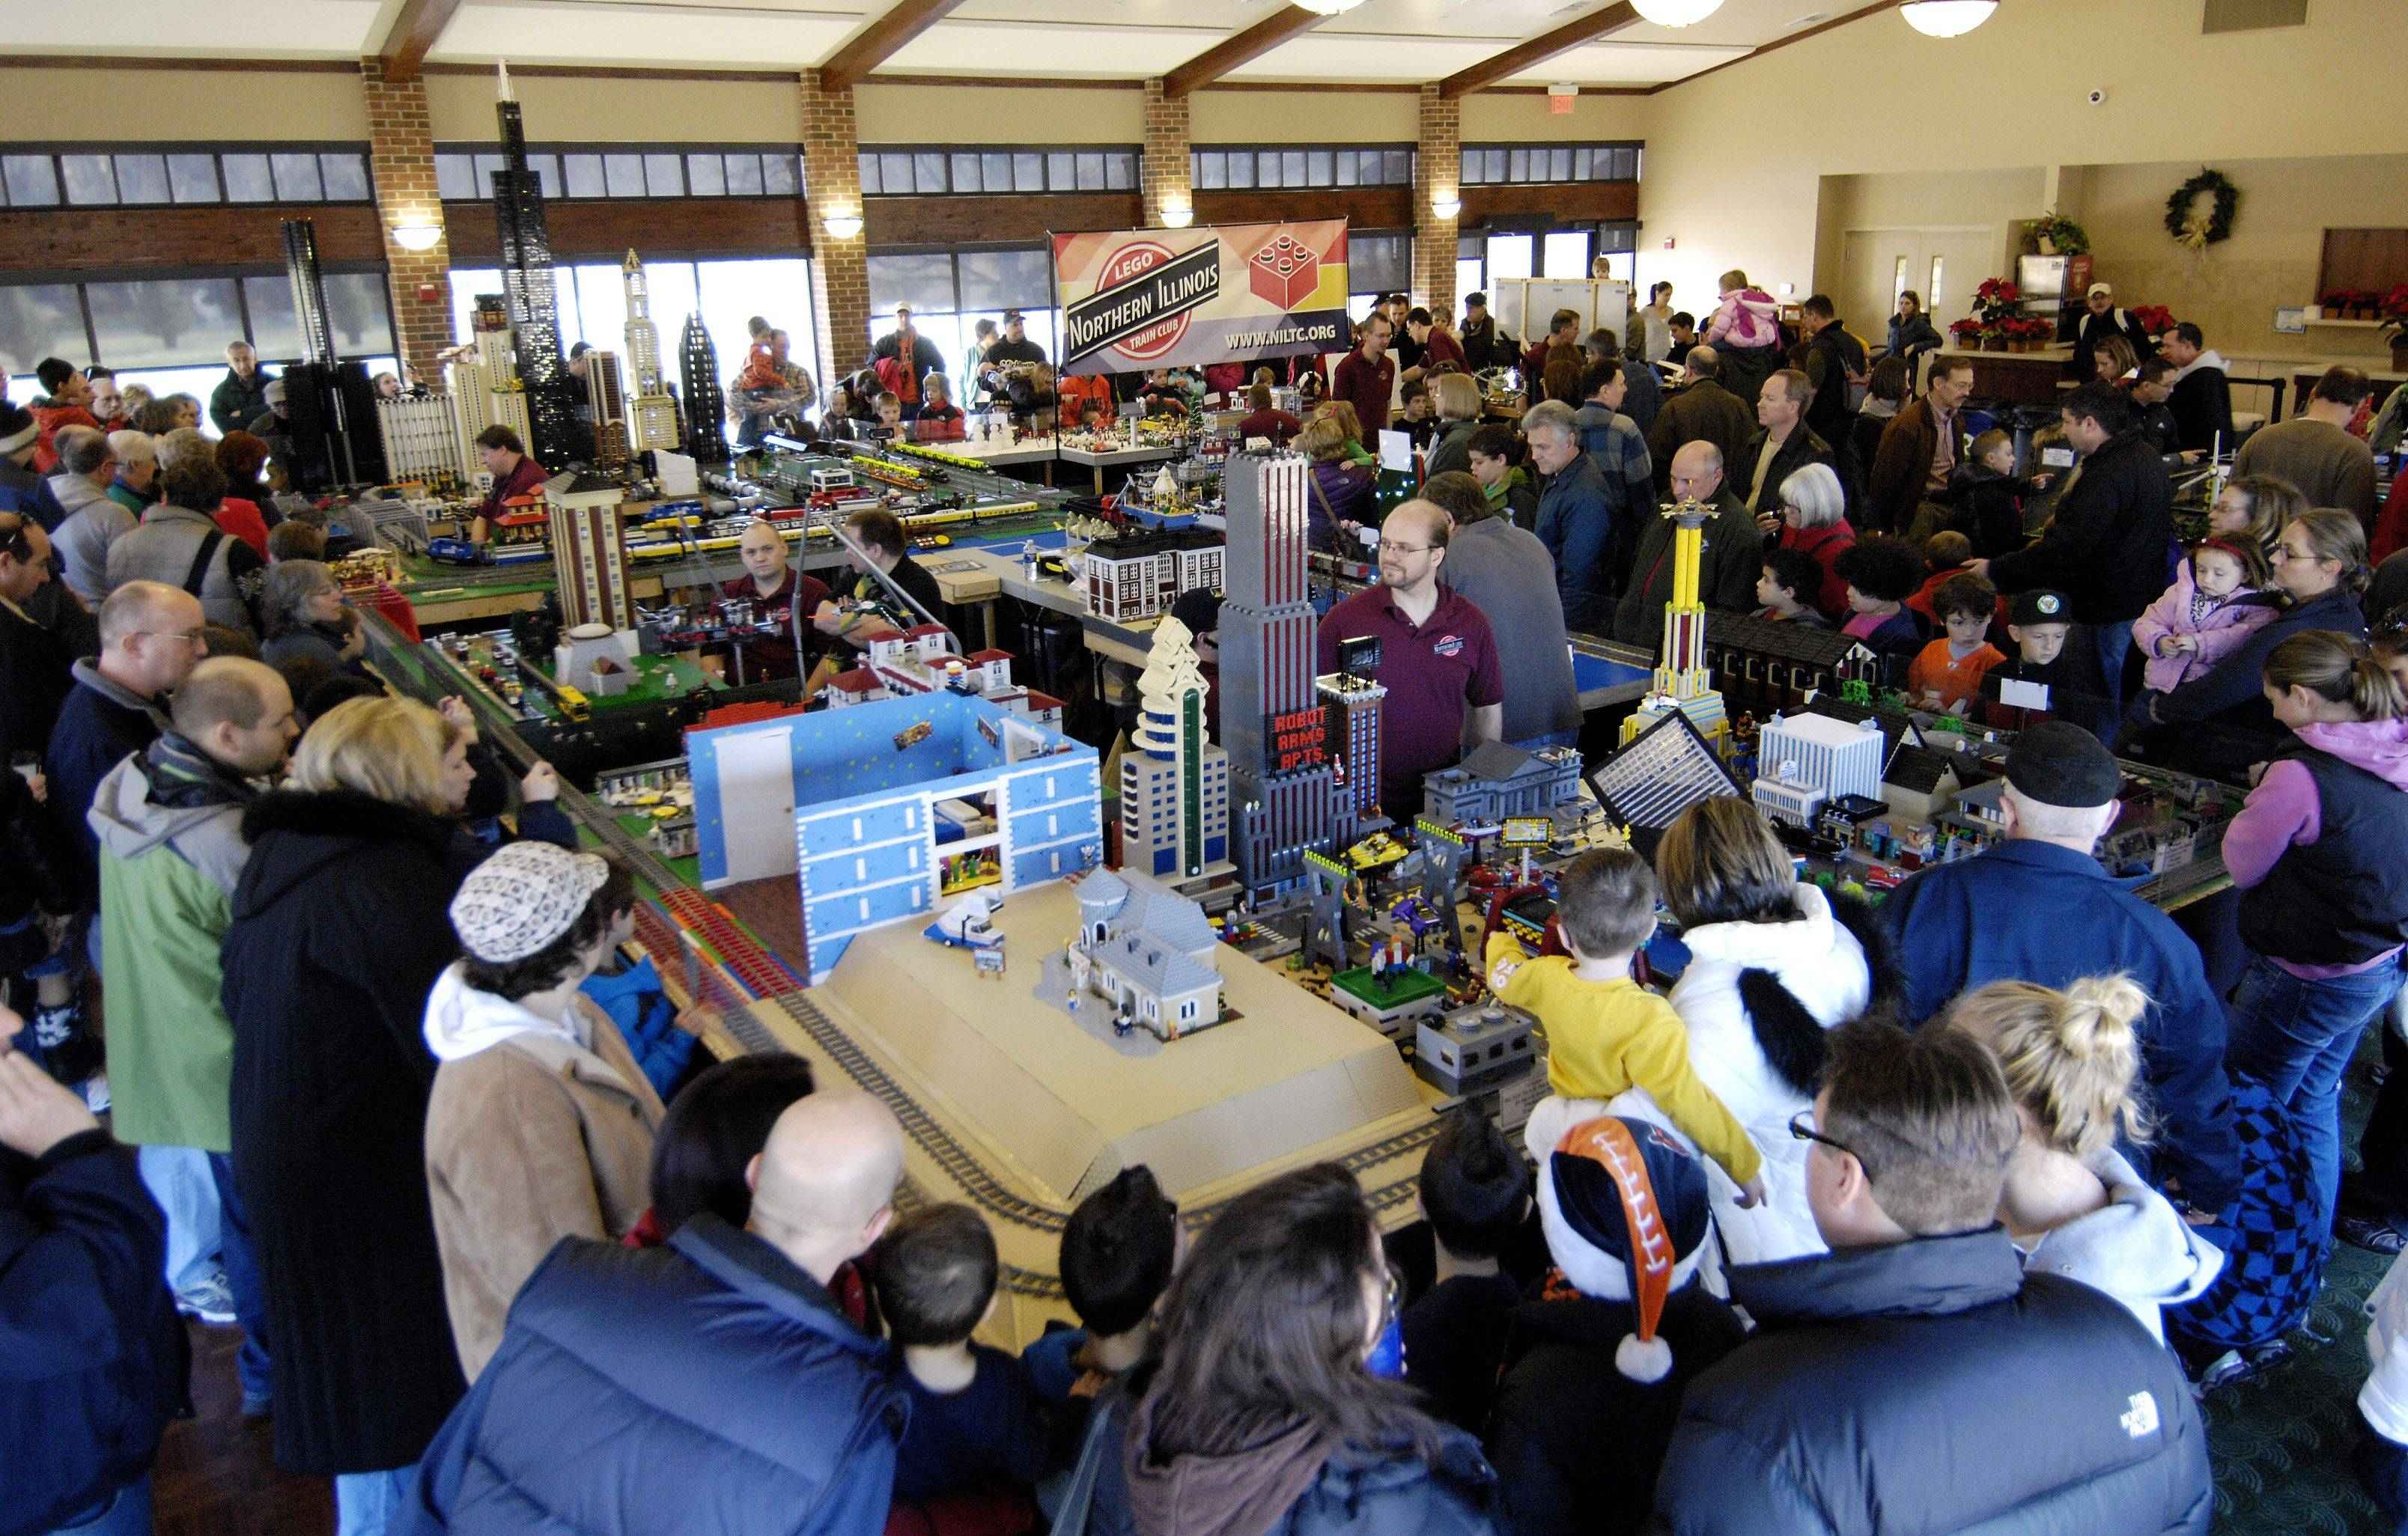 Lego enthusiasts attend the Lego Train Show Sunday at Cantigny Park in Wheaton. A record crowd was expected for the weekend event.